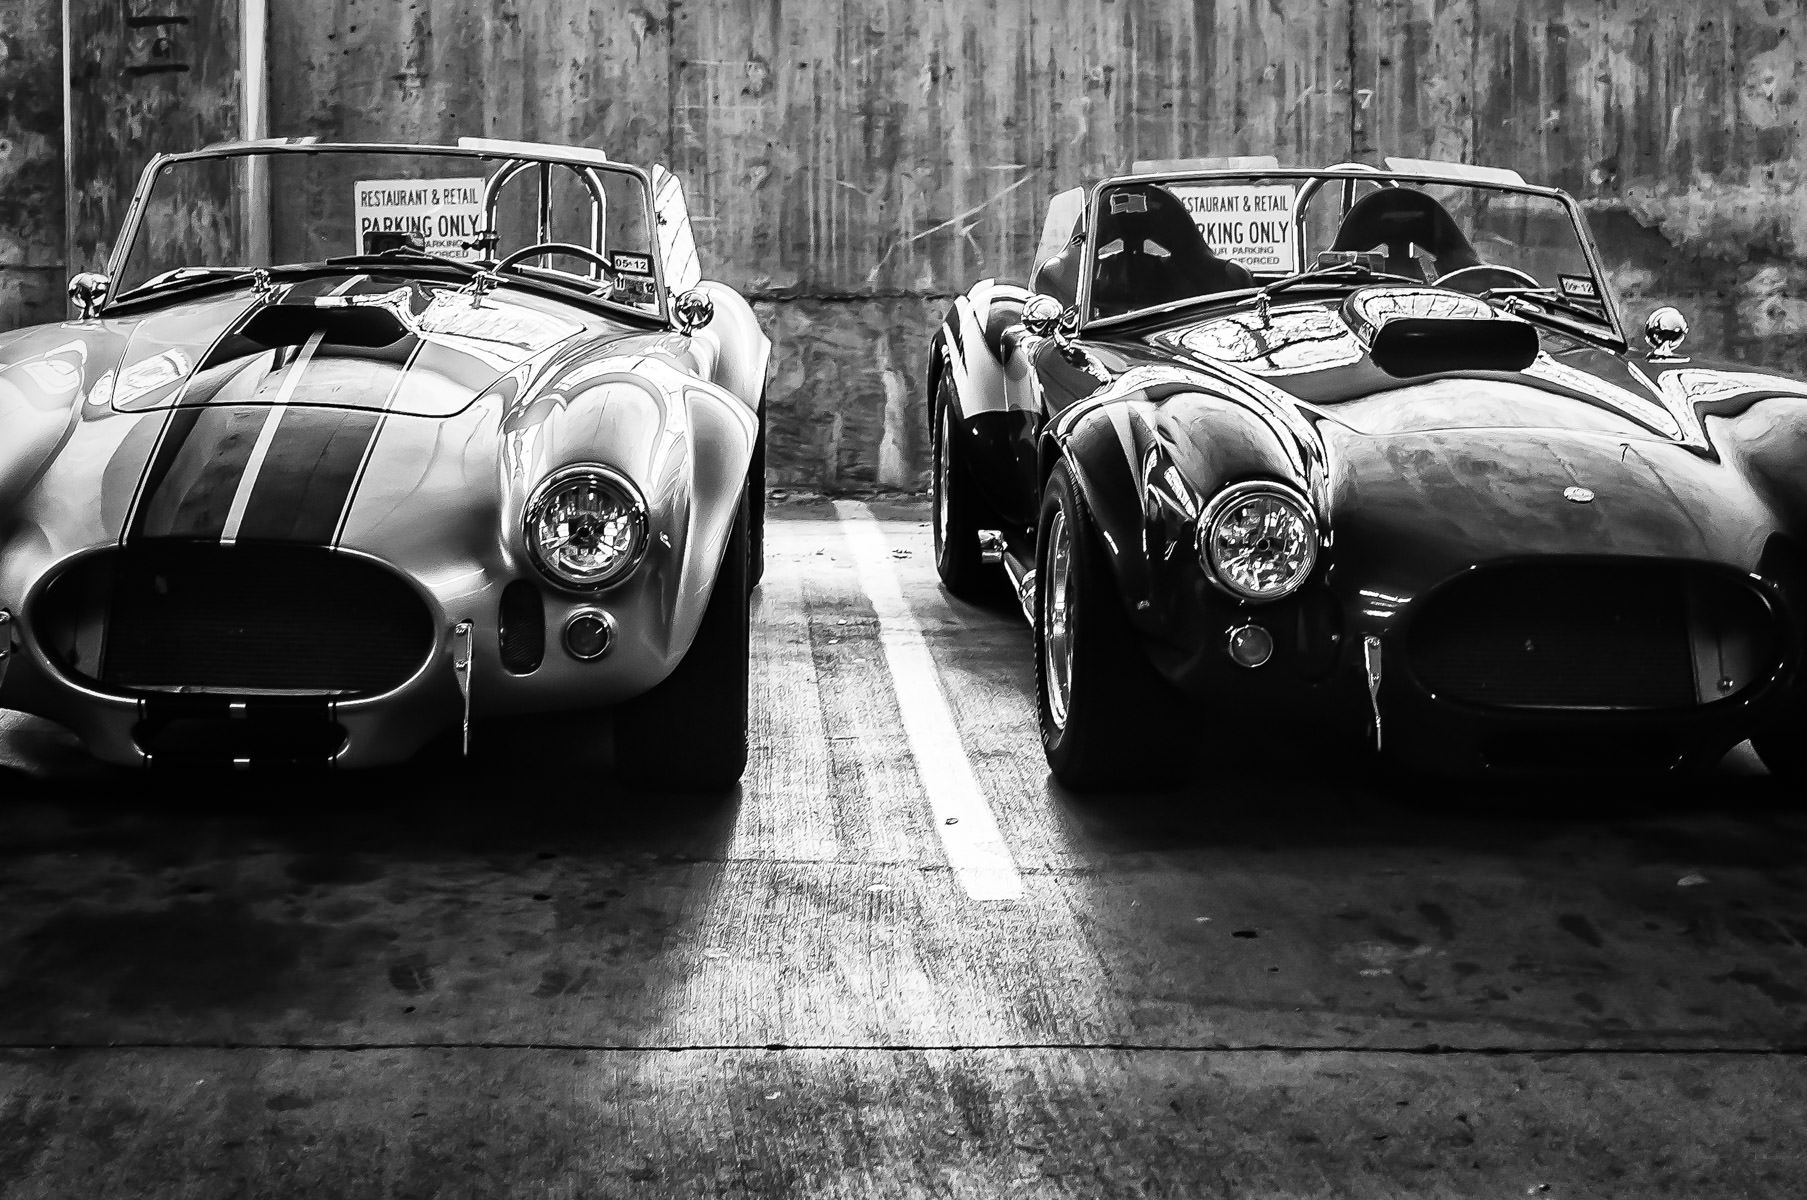 Two AC Cobras in a parking garage in Addison, Texas.